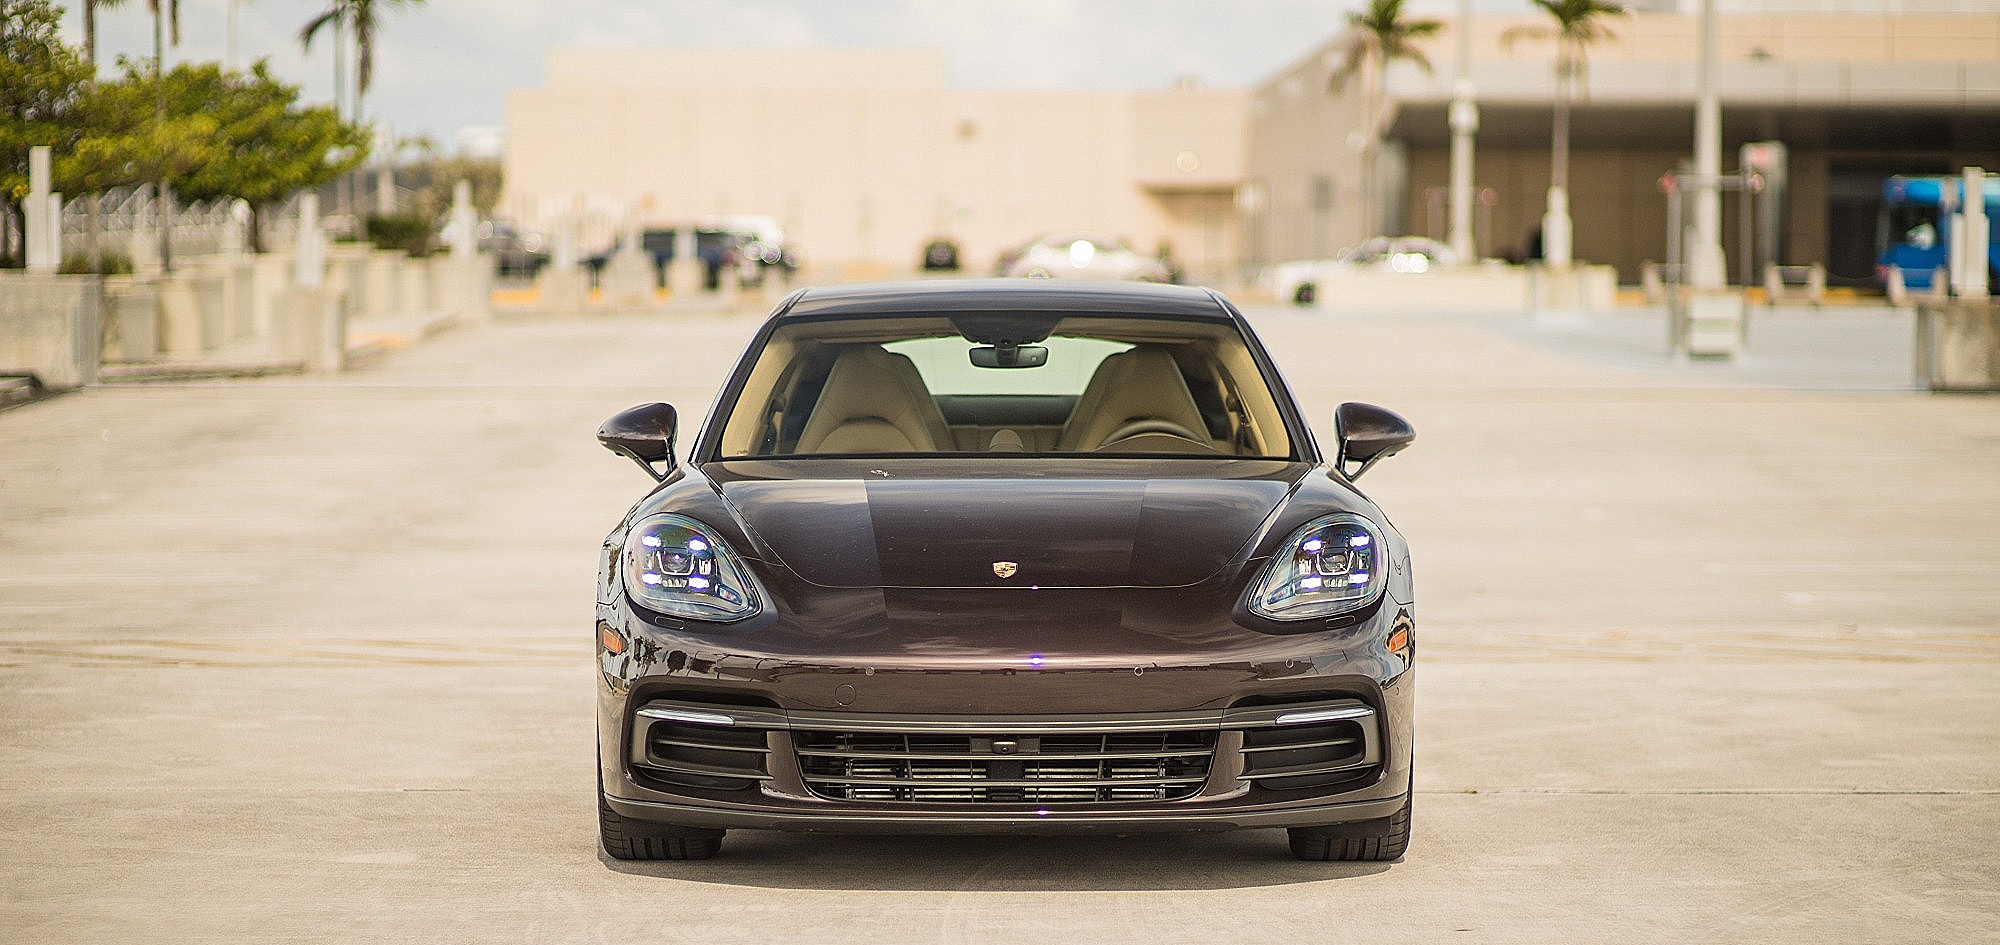 Porsche Panamera 4S - Color | Brown